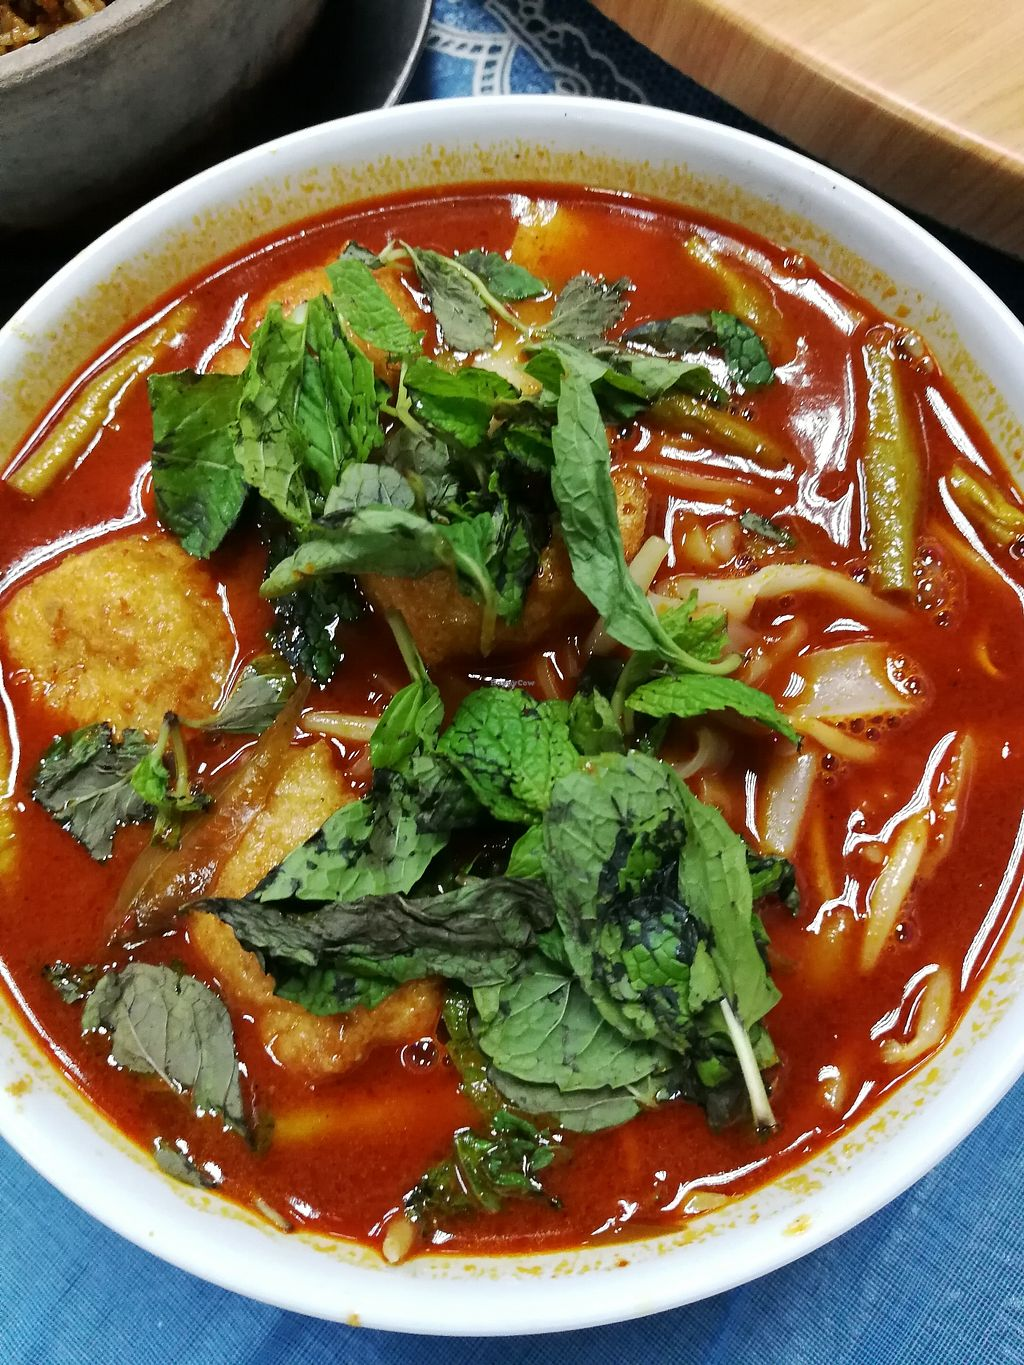 """Photo of Water Lily Restaurant  by <a href=""""/members/profile/RawChefYin"""">RawChefYin</a> <br/>Curry Kueh Teow Noodles <br/> February 7, 2018  - <a href='/contact/abuse/image/7264/355883'>Report</a>"""